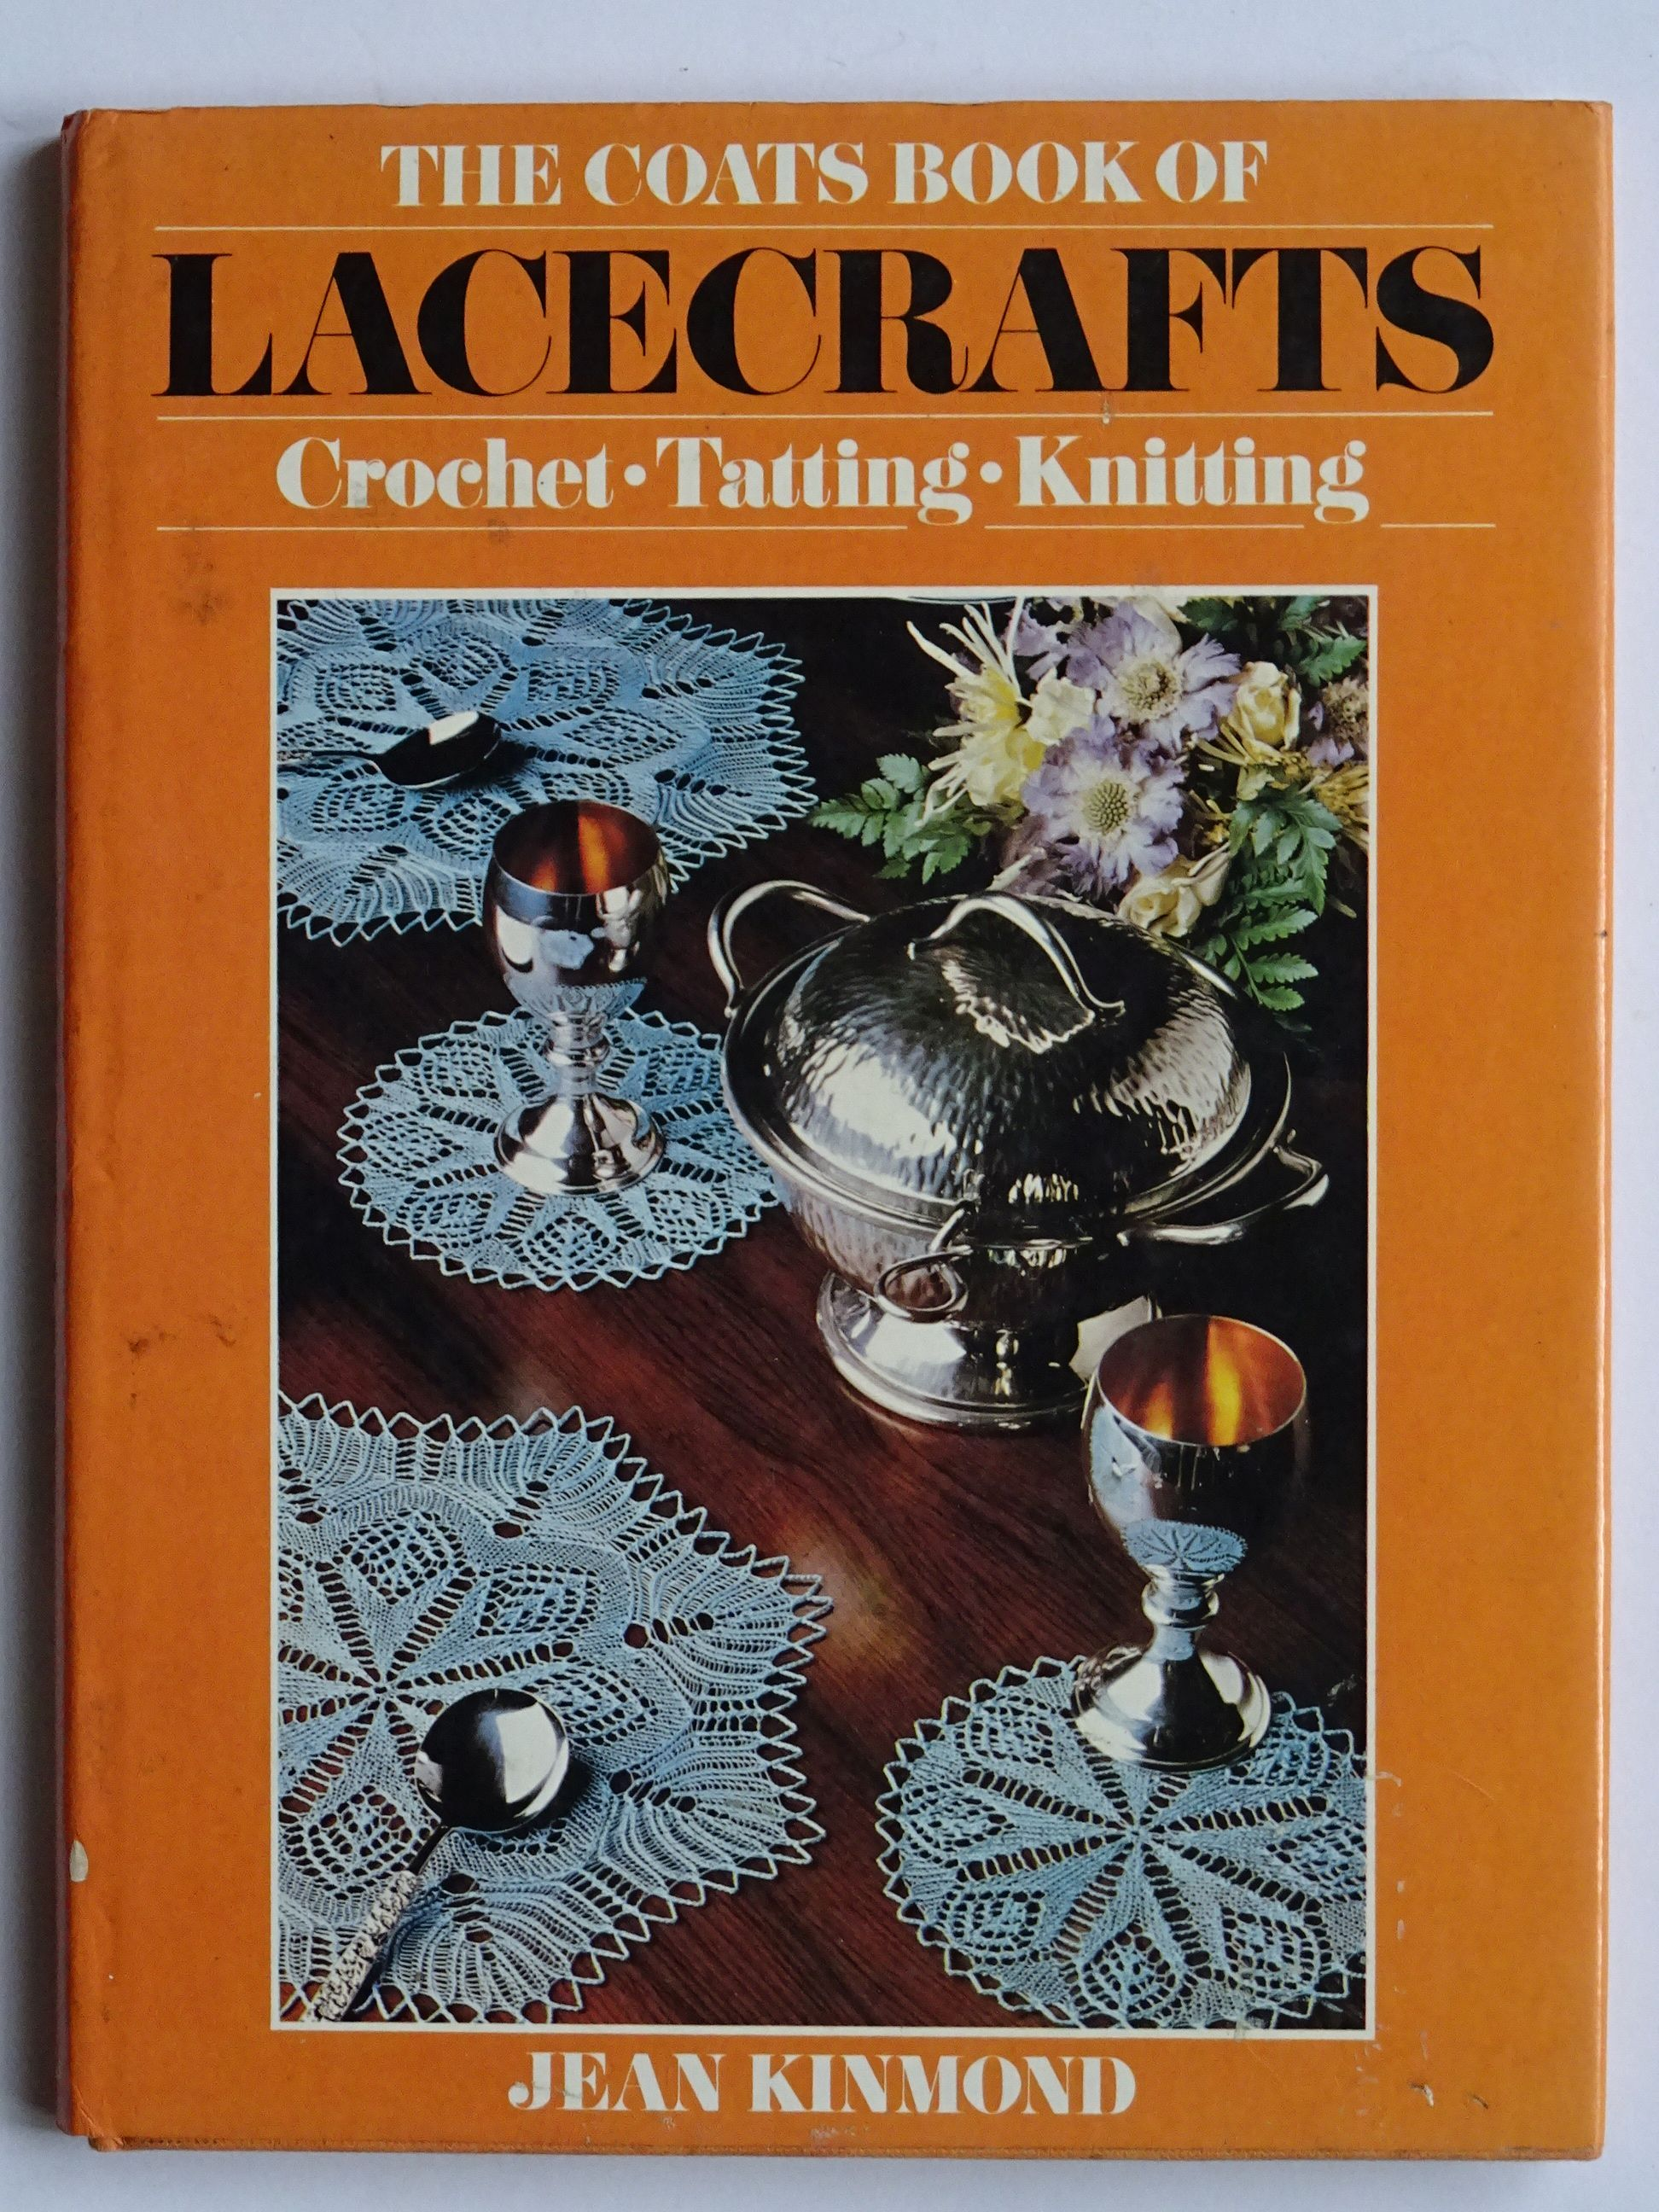 Kinmond, Jean -  The coats book of Lacecrafts. Crochet, Tatting, Knitting.